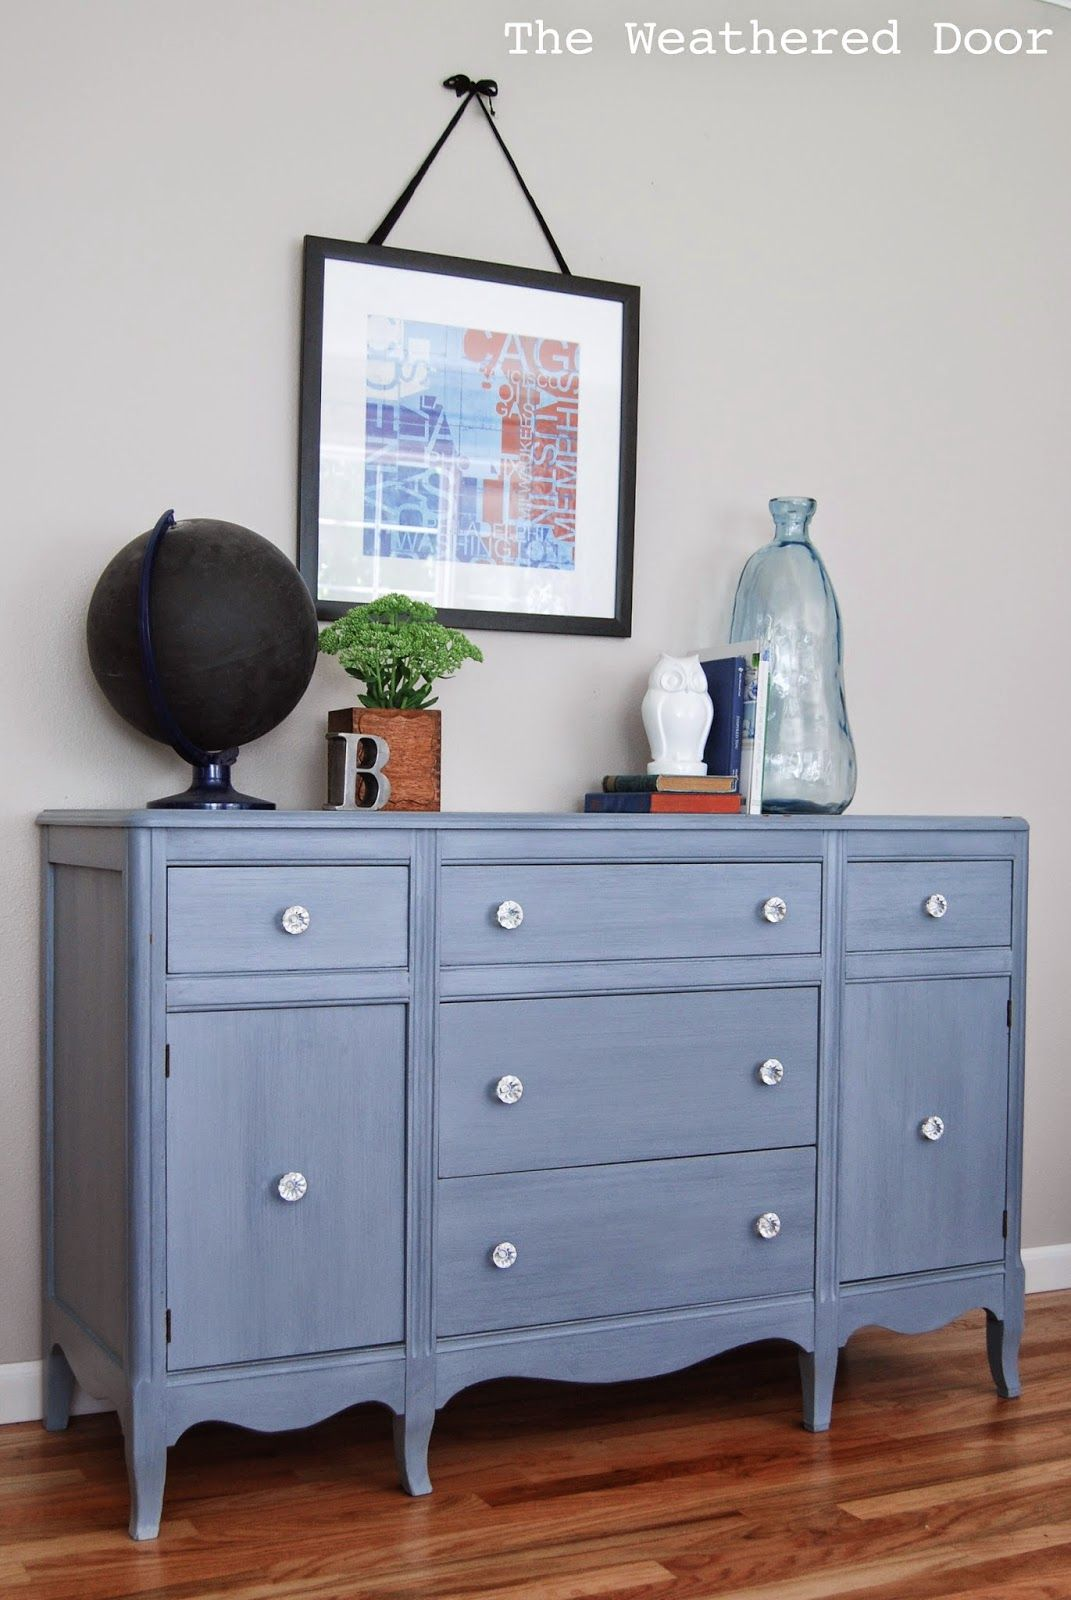 Exceptionnel Blue Grey Antique Hepplewhite Buffet [Before U0026 After] | The Weathered Door